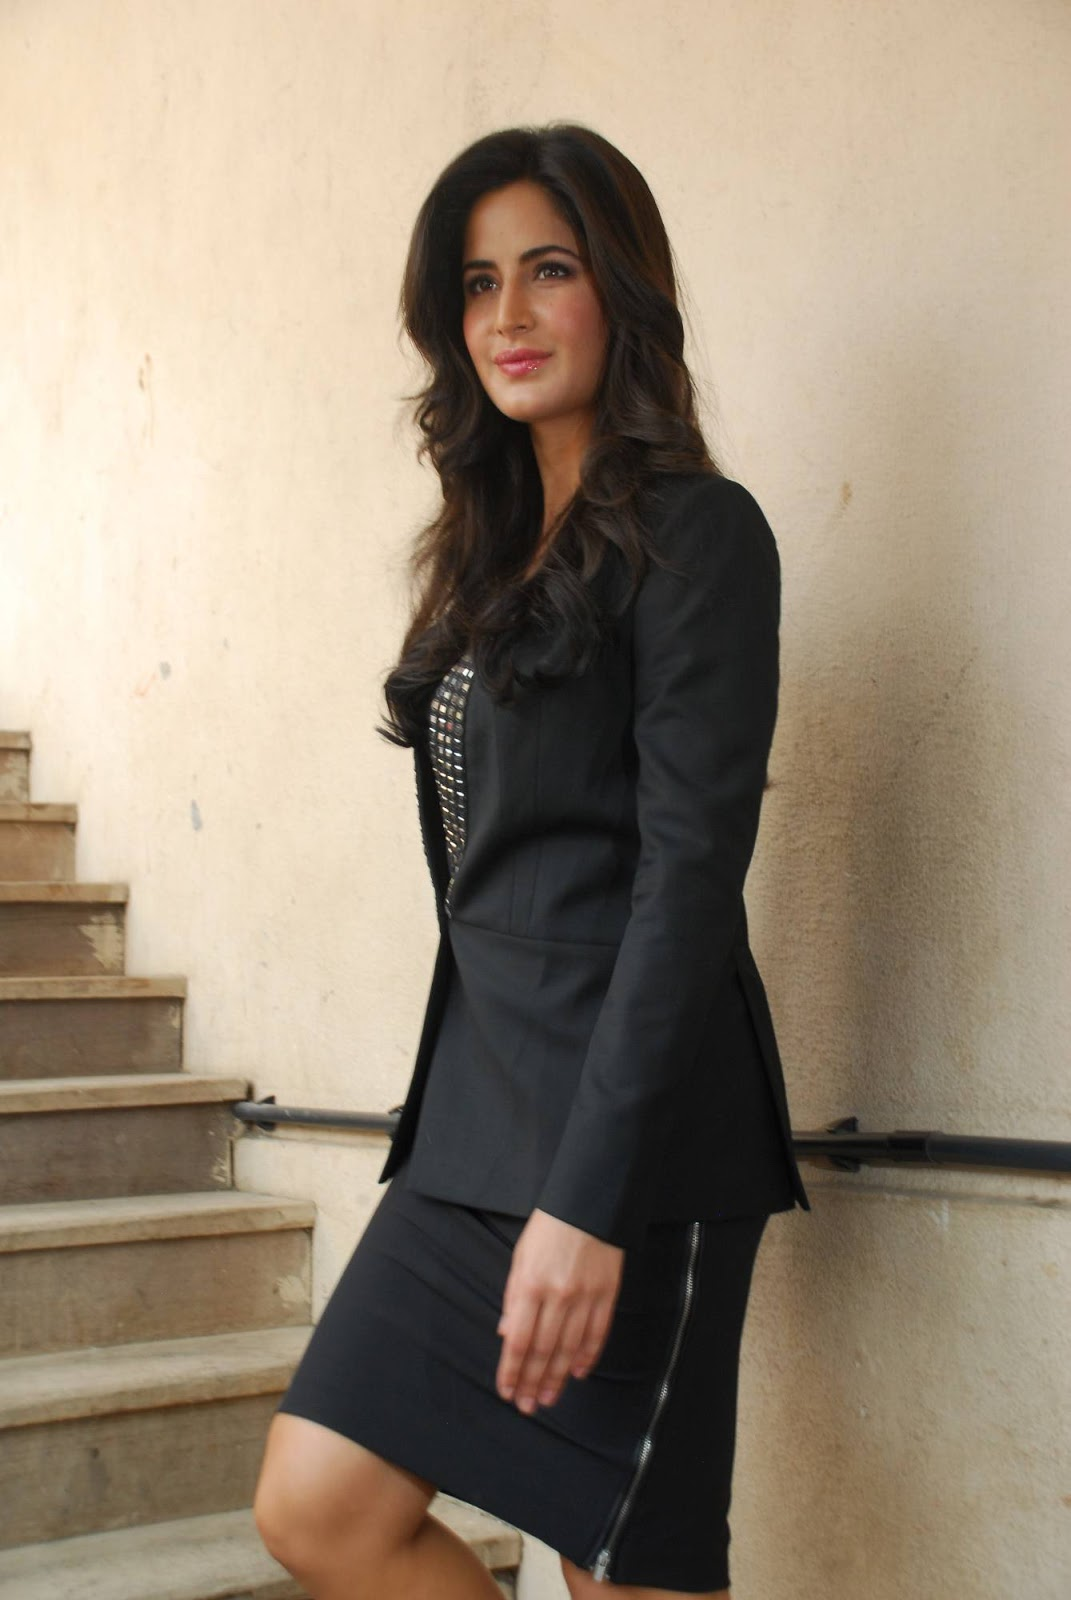 Most Glamours Bollywood Girl Katrina Kaif Stills In Hot Black Dress